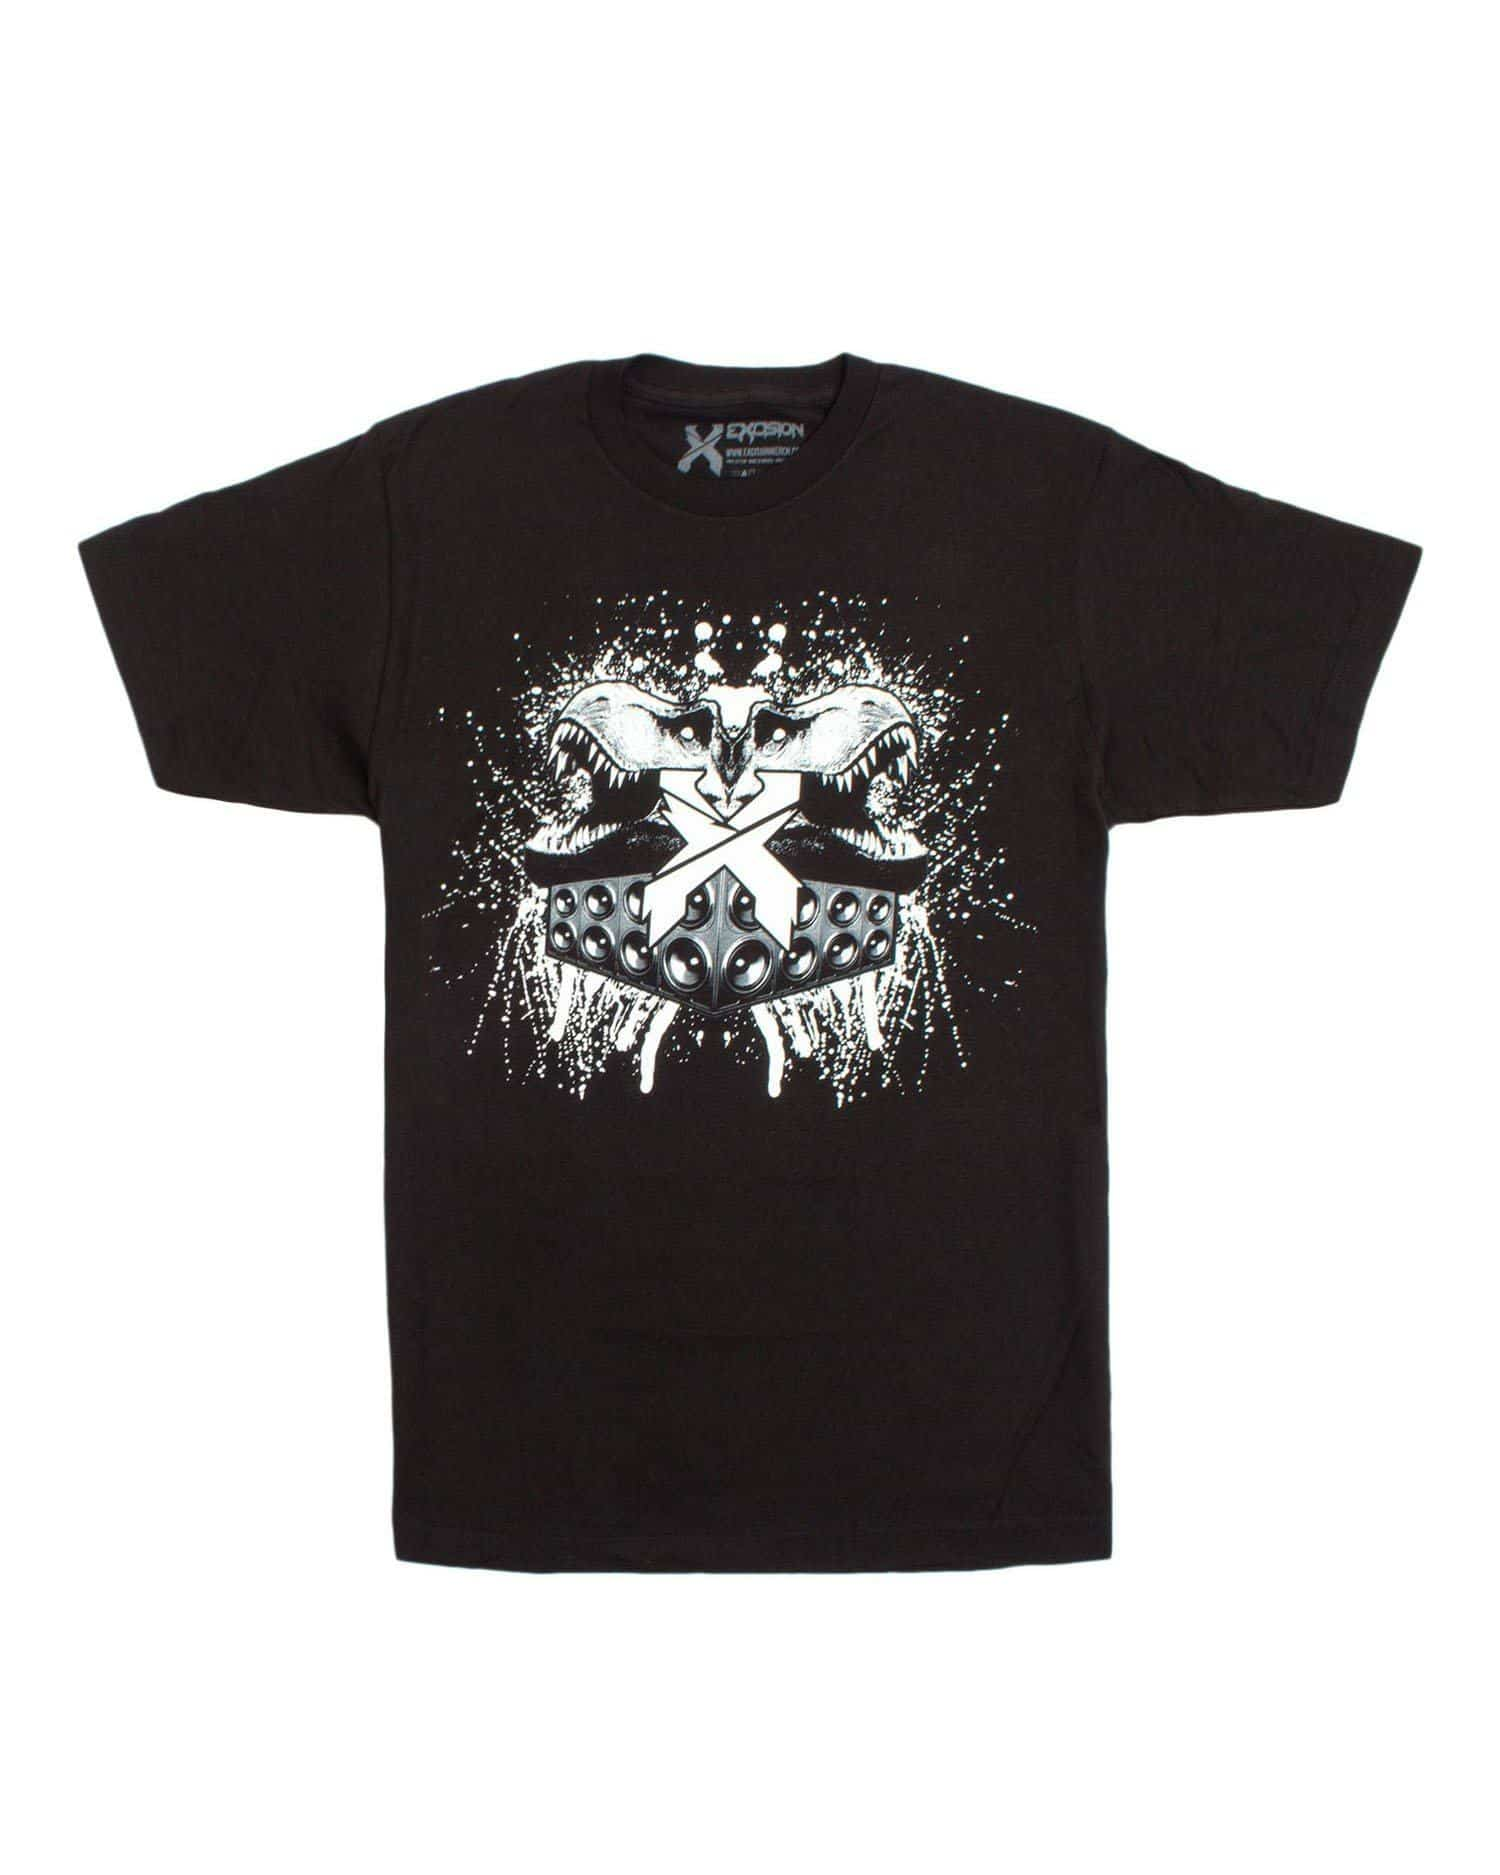 Excision 'Low End Rex' Unisex T-Shirt